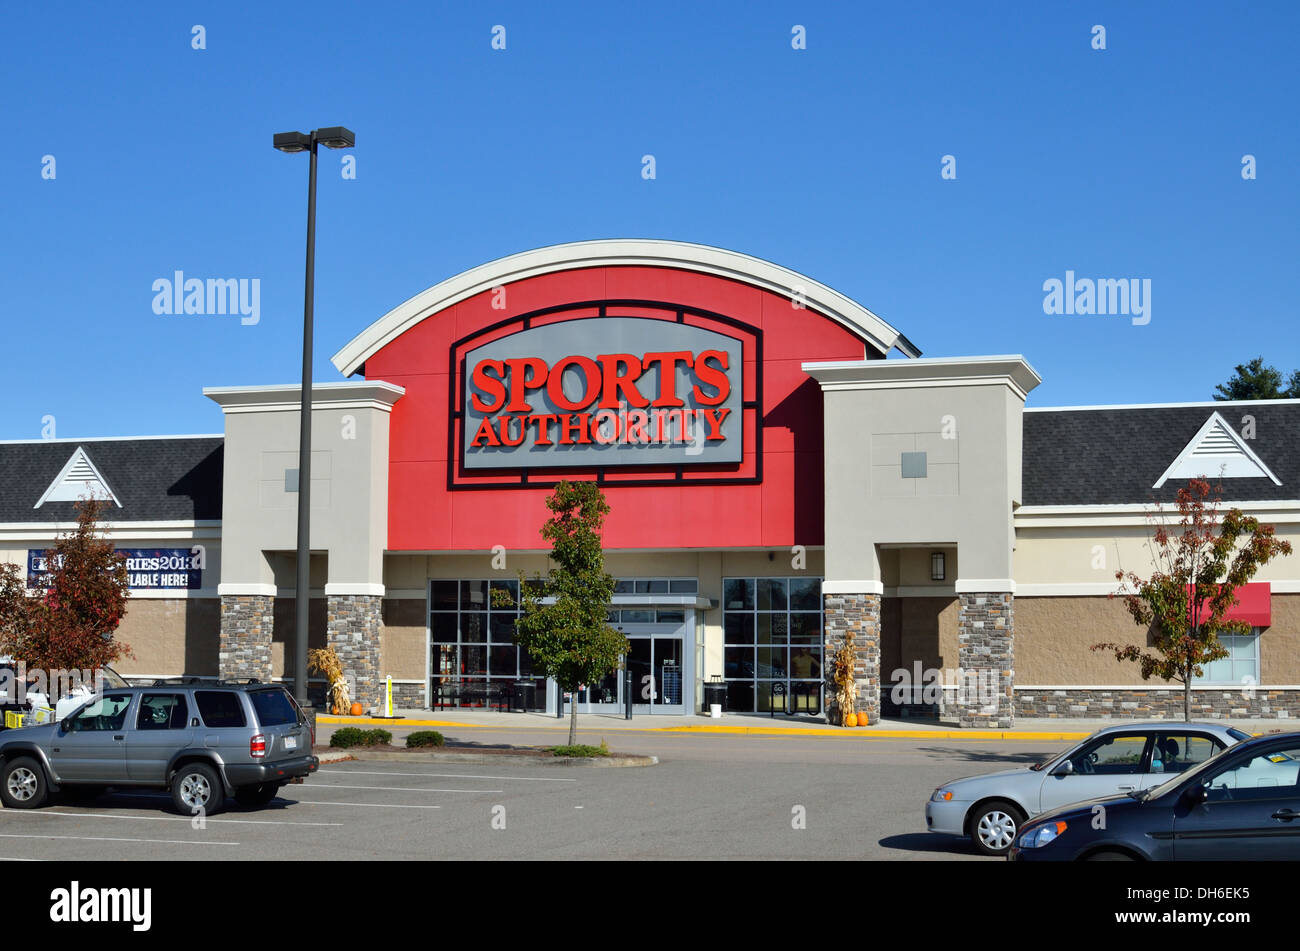 Exterior of a Sports Authority retail store with cars in parking lot. USA - Stock Image